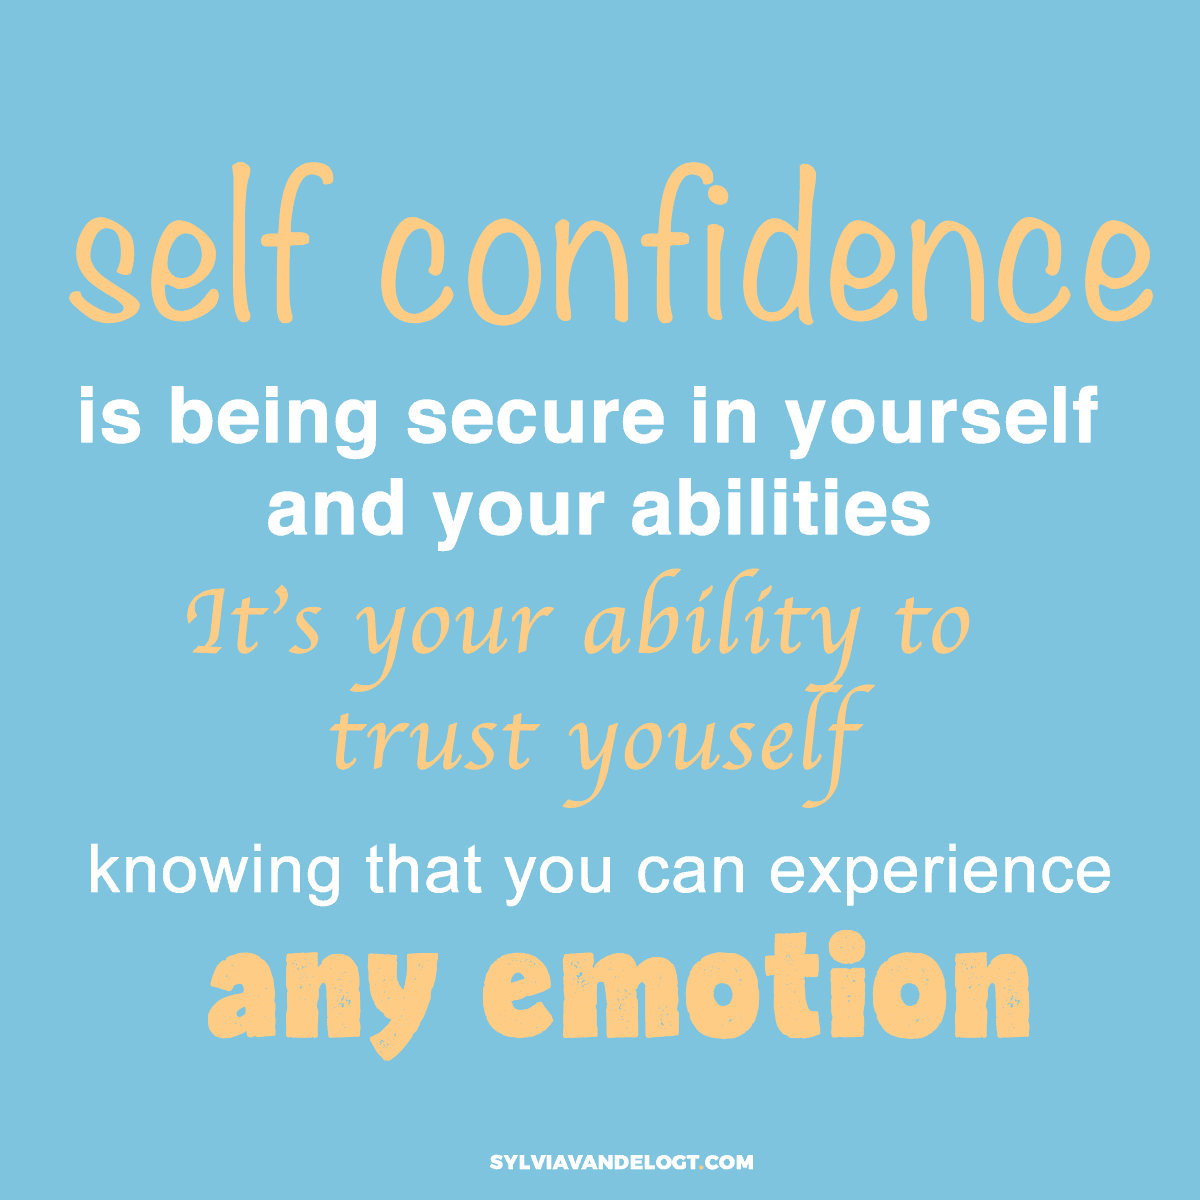 how to build self confidence - Learn the ONE THING you need to master to get it | 40plusstyle.com